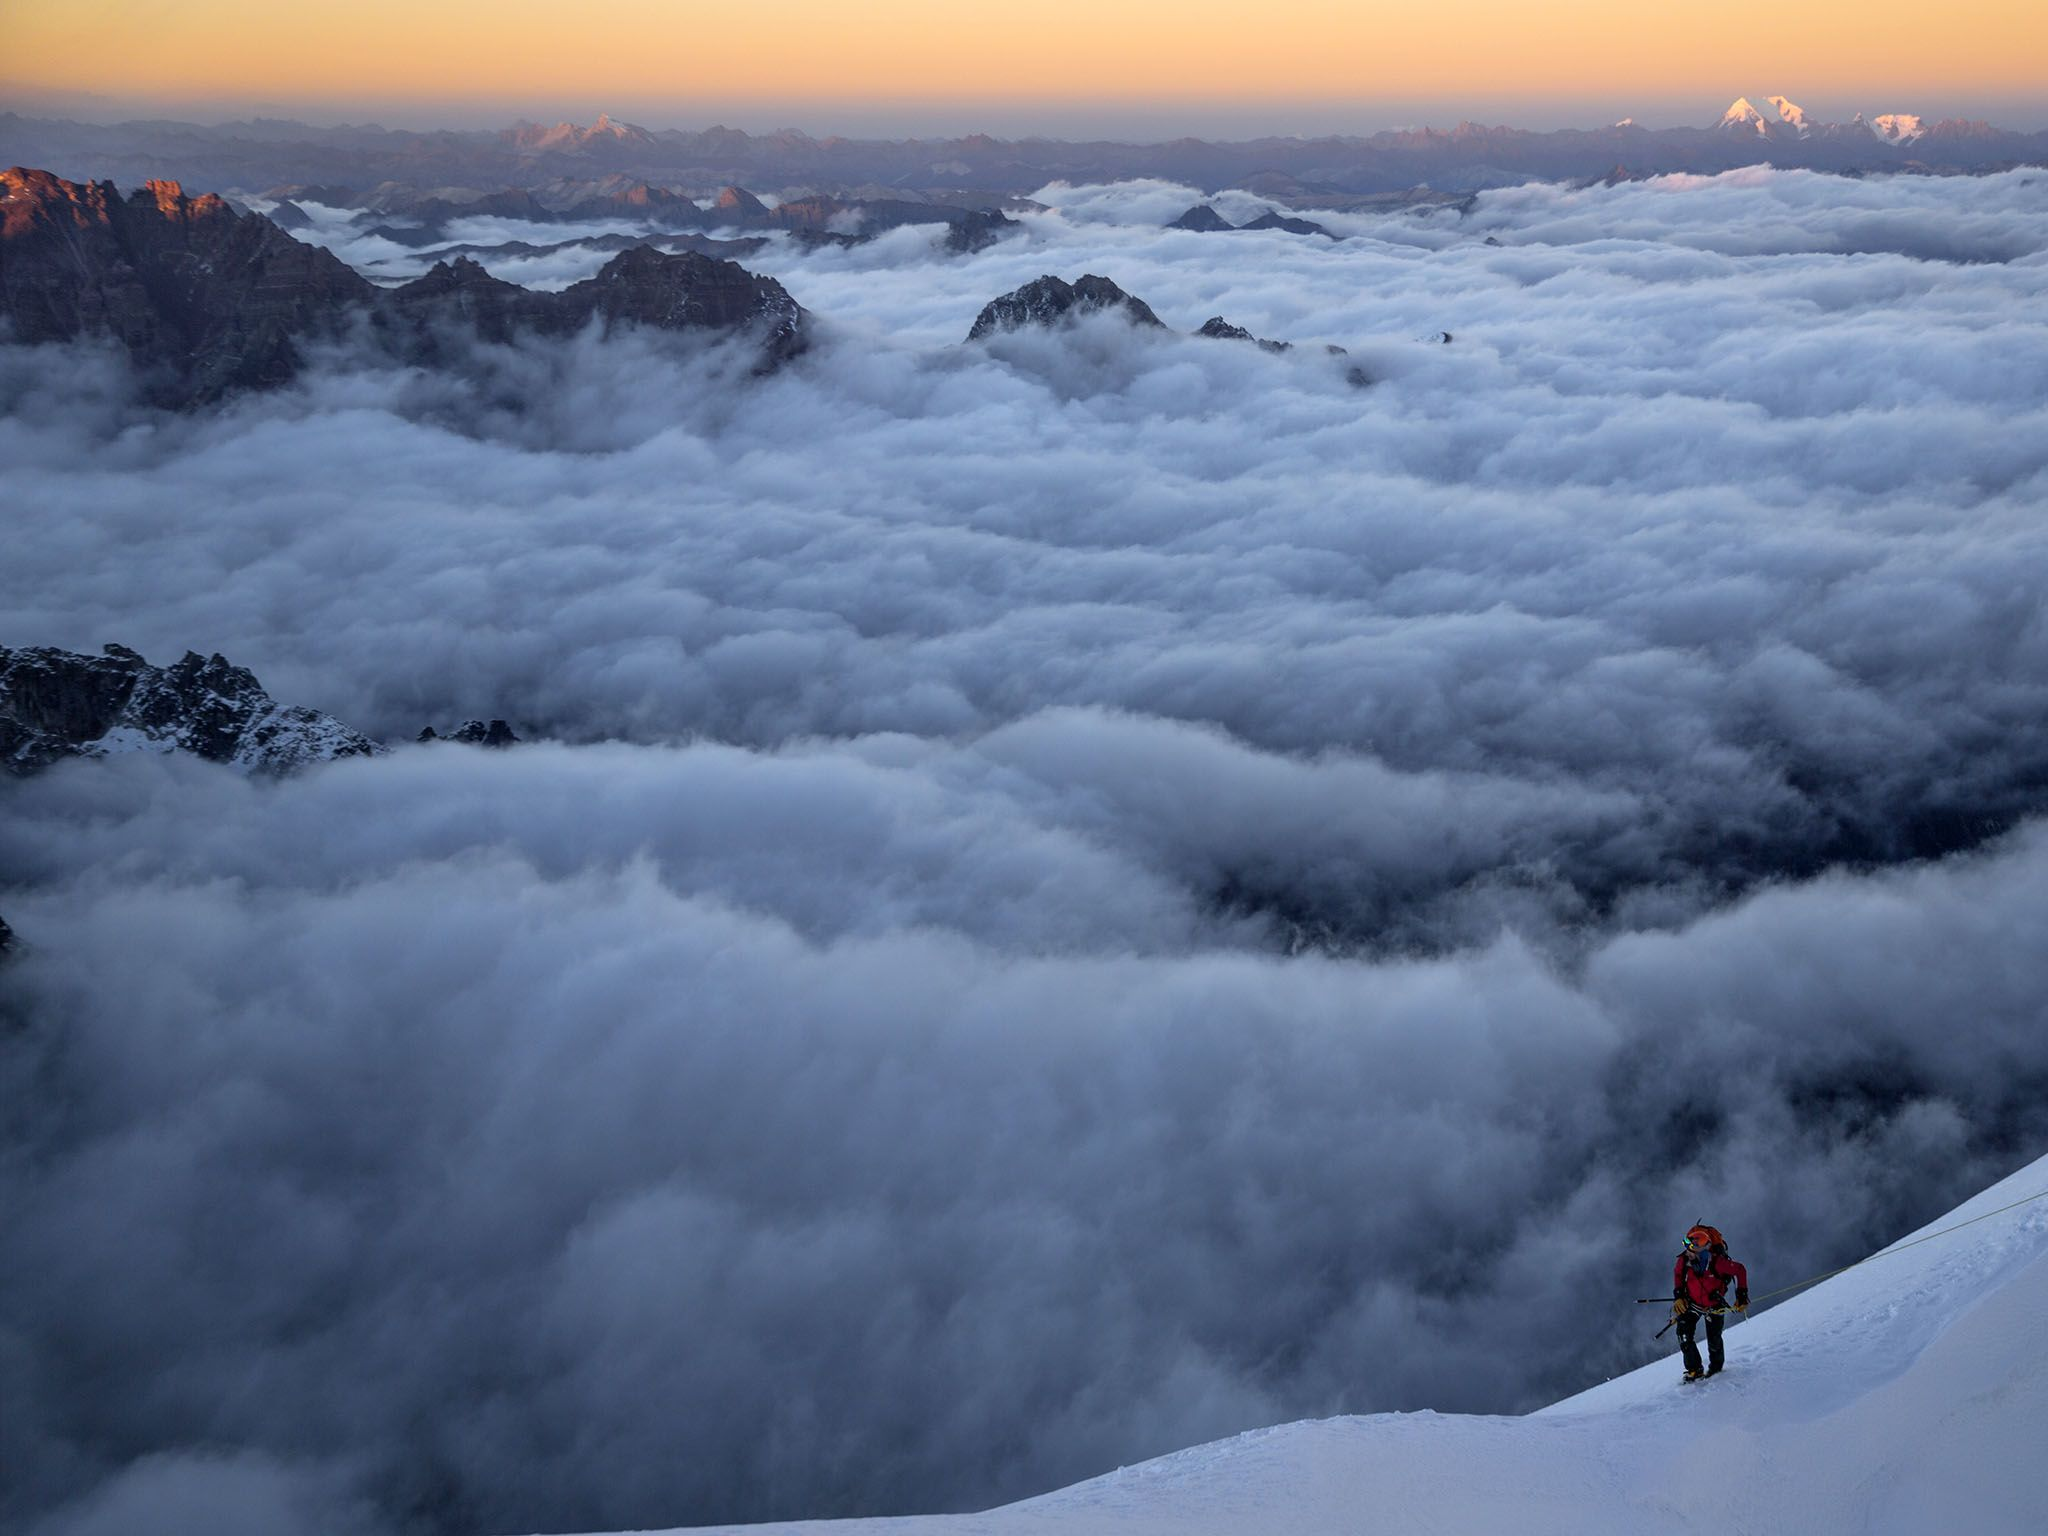 Kachin, Myanmar: Renan Ozturk climbing toward the summit of Hkakabo Razi way up over the clouds.... [Photo of the day - May 2016]